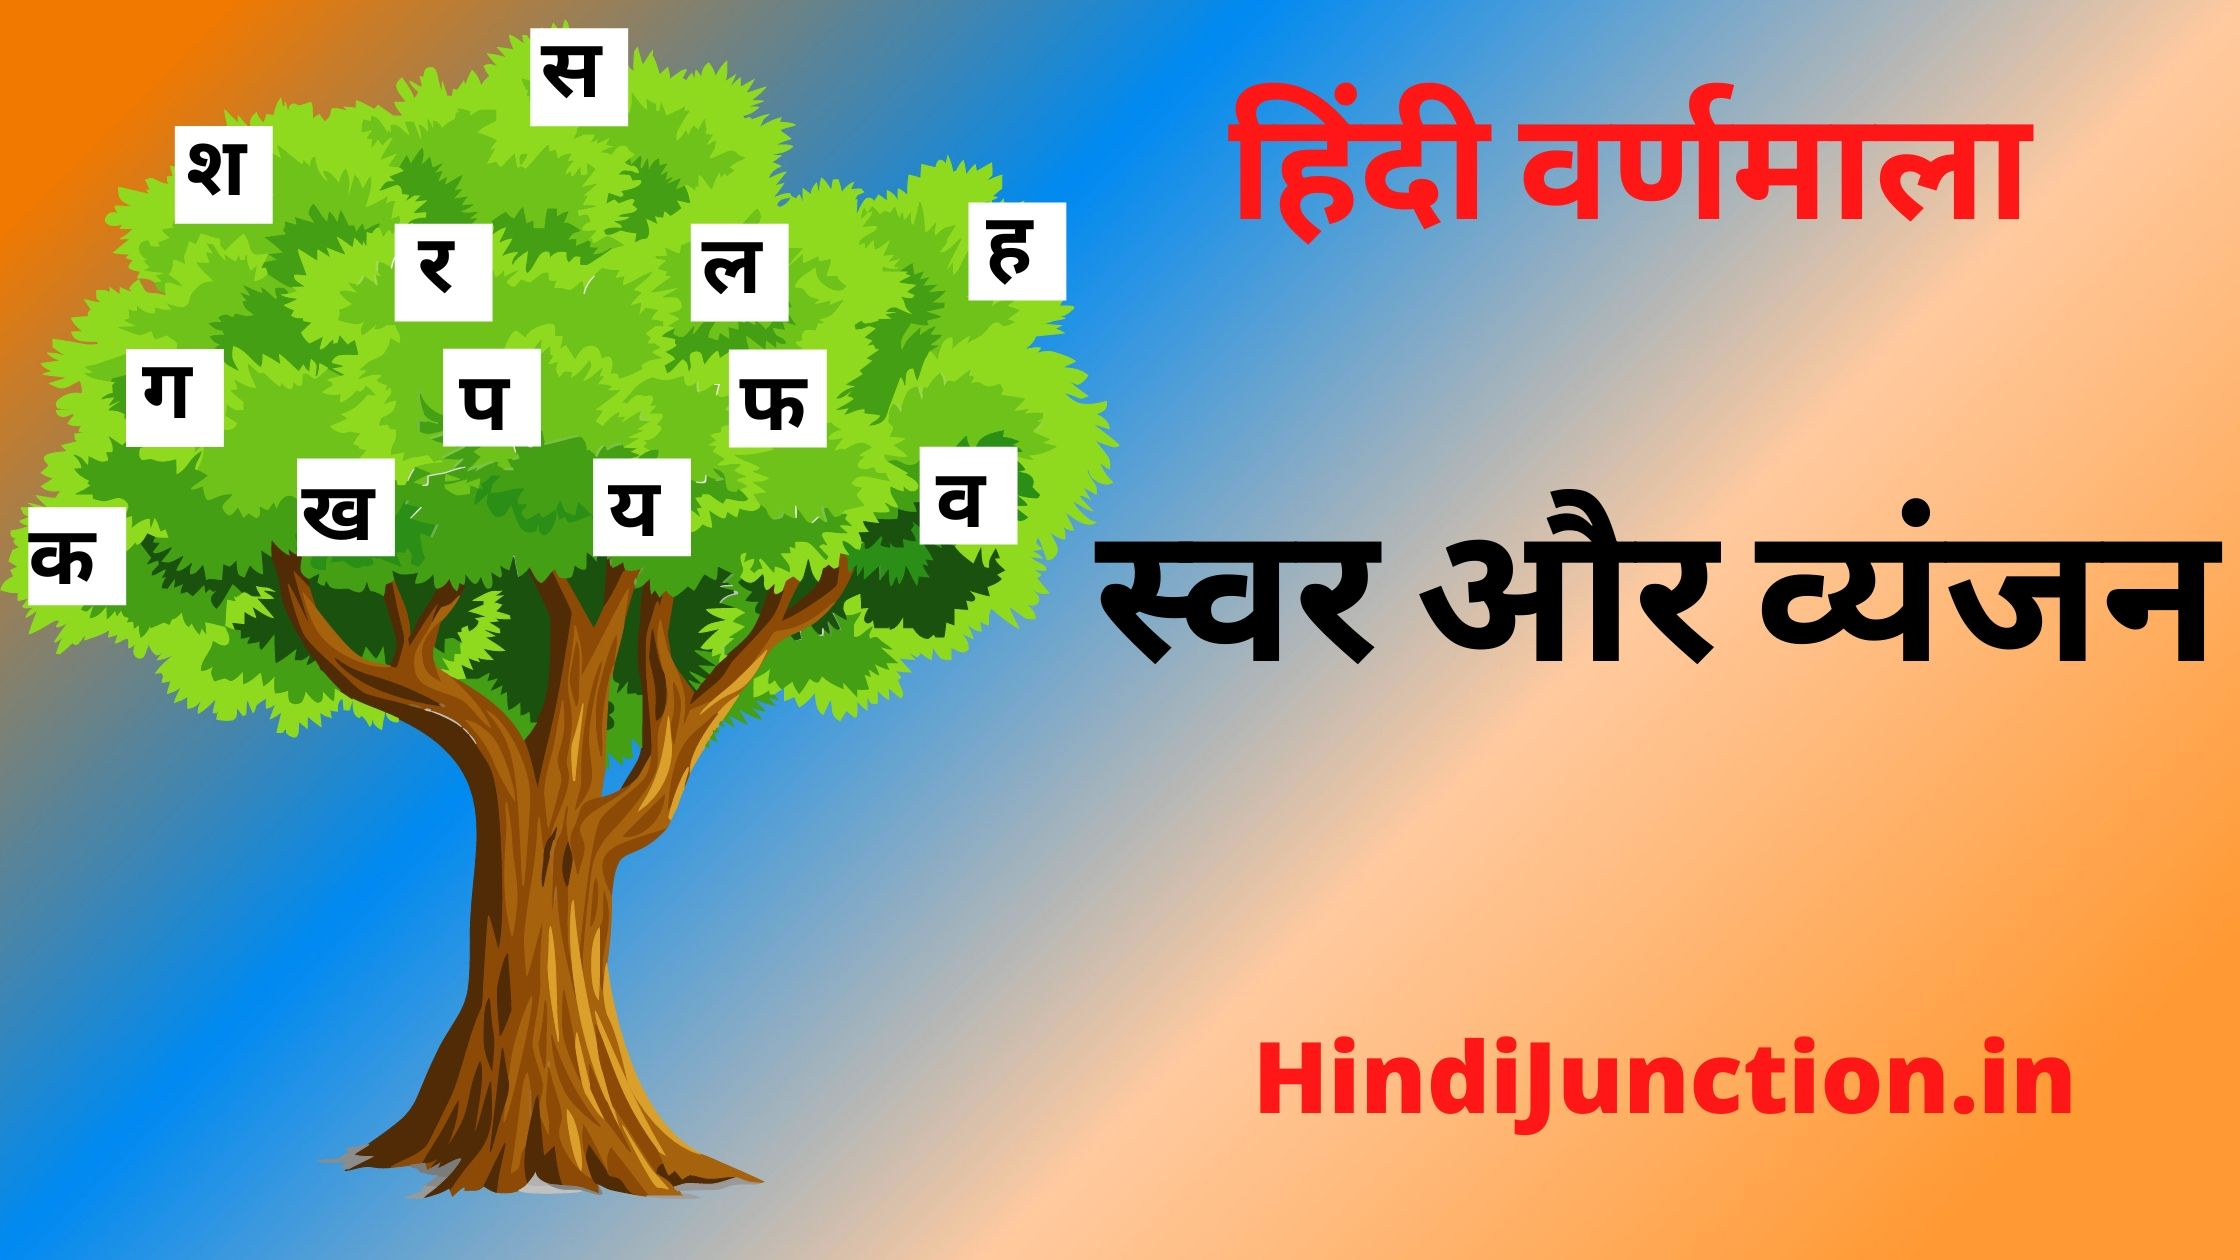 Swar And Vyanjan In Hindi, hindi varnamala, swar kitne hote hain, hindi swar and vyanjan pdf, swar and vyanjan in marathi, hindi swar and vyanjan worksheets, types of swar in hindi, vyanjan ki matra in hindi, hindi varnamala matra, how many swar and vyanjan in hindi, hindi vyanjan writing, hindi swar and vyanjan with pictures